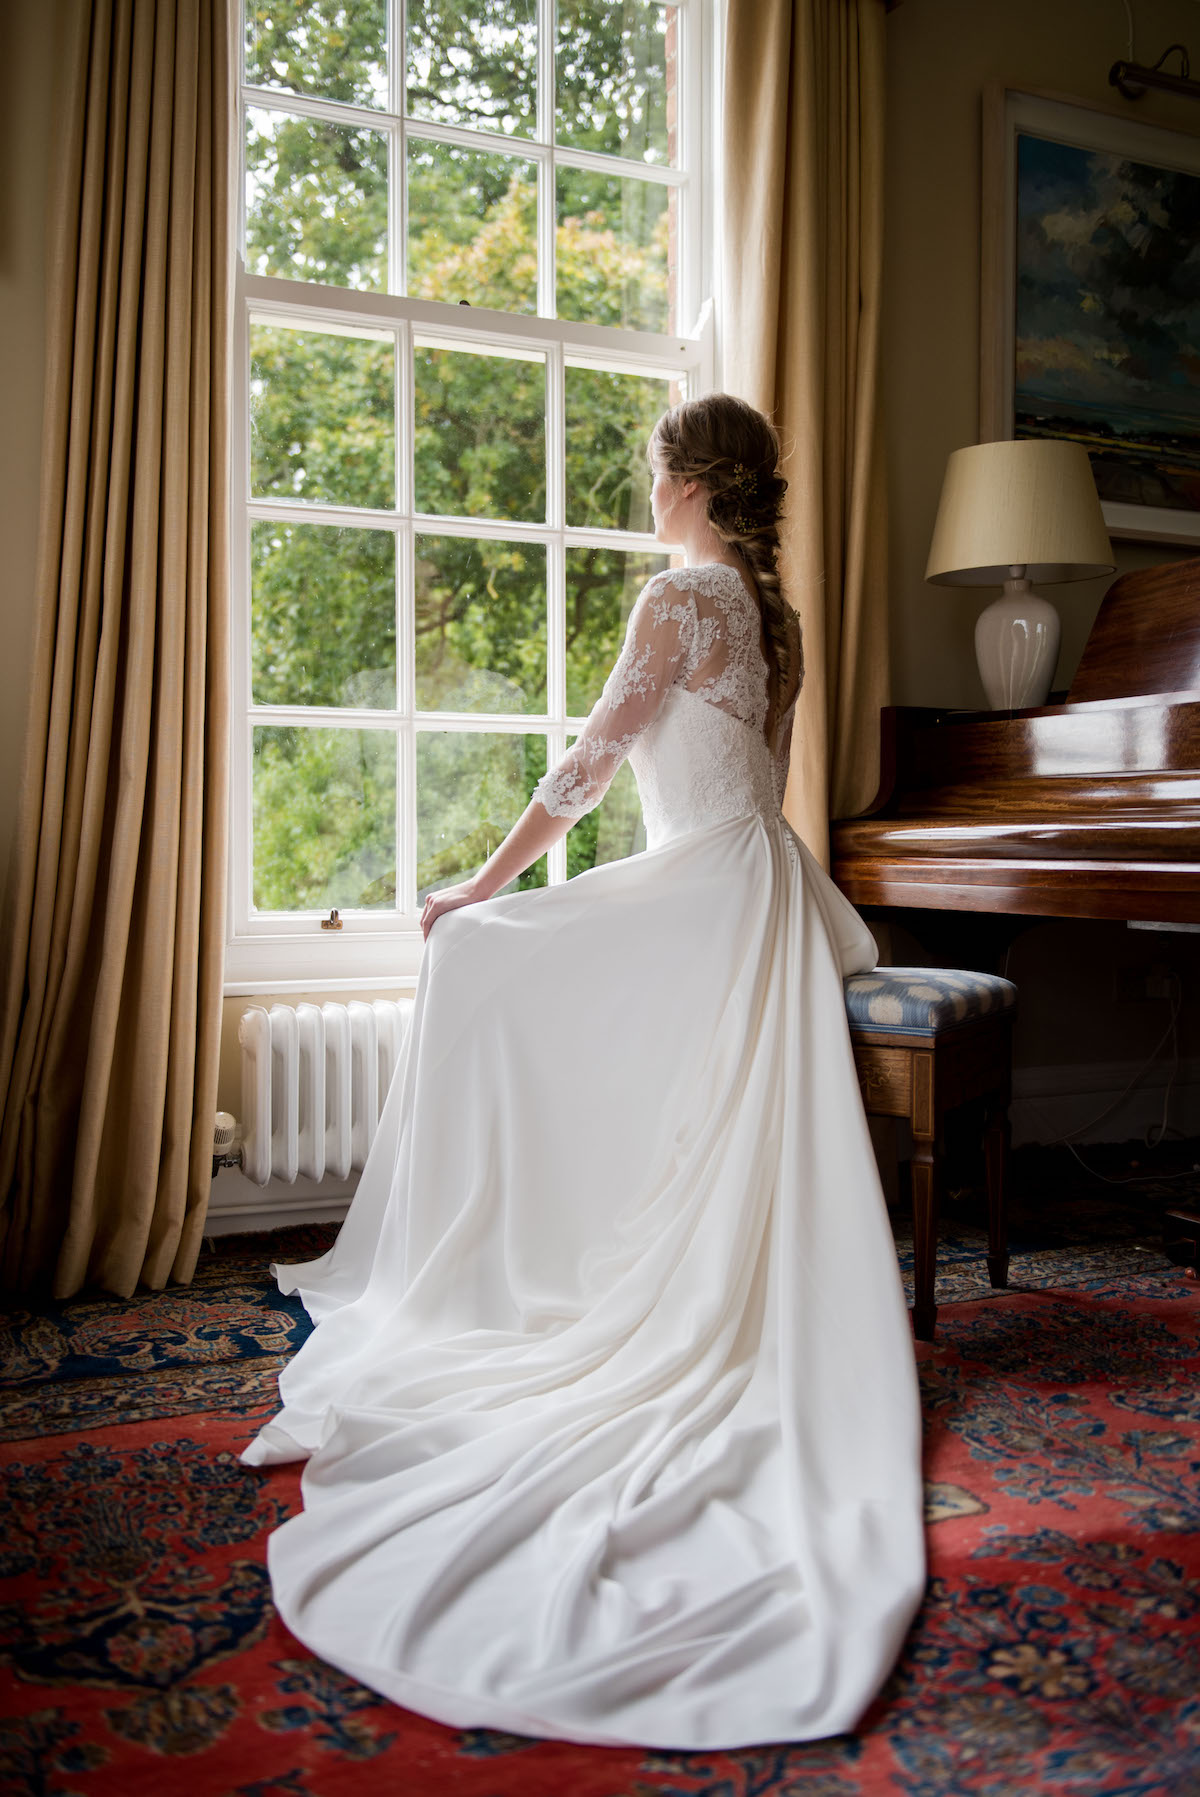 HOCKERING HOUSE ELEGANT BRIDE NORFOLK